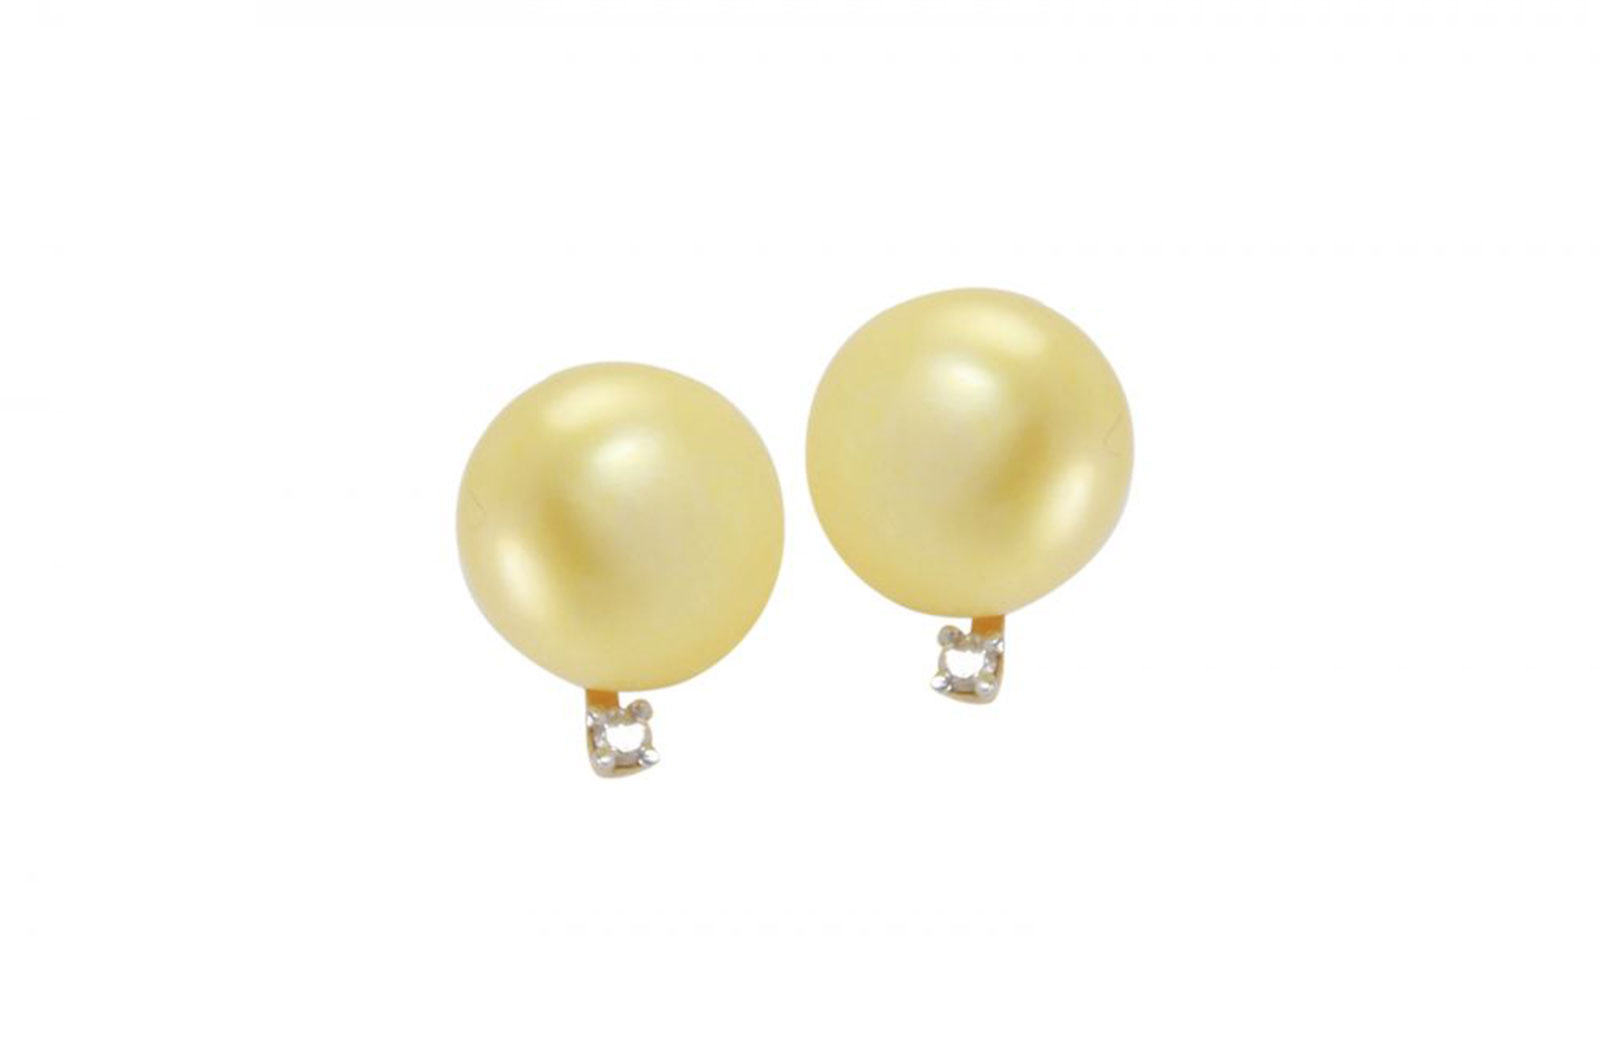 Vera Perla 18K Solid Gold 0.04Cts Genuine Diamonds 9-10mm Genuine Golden Pearls  Earrings